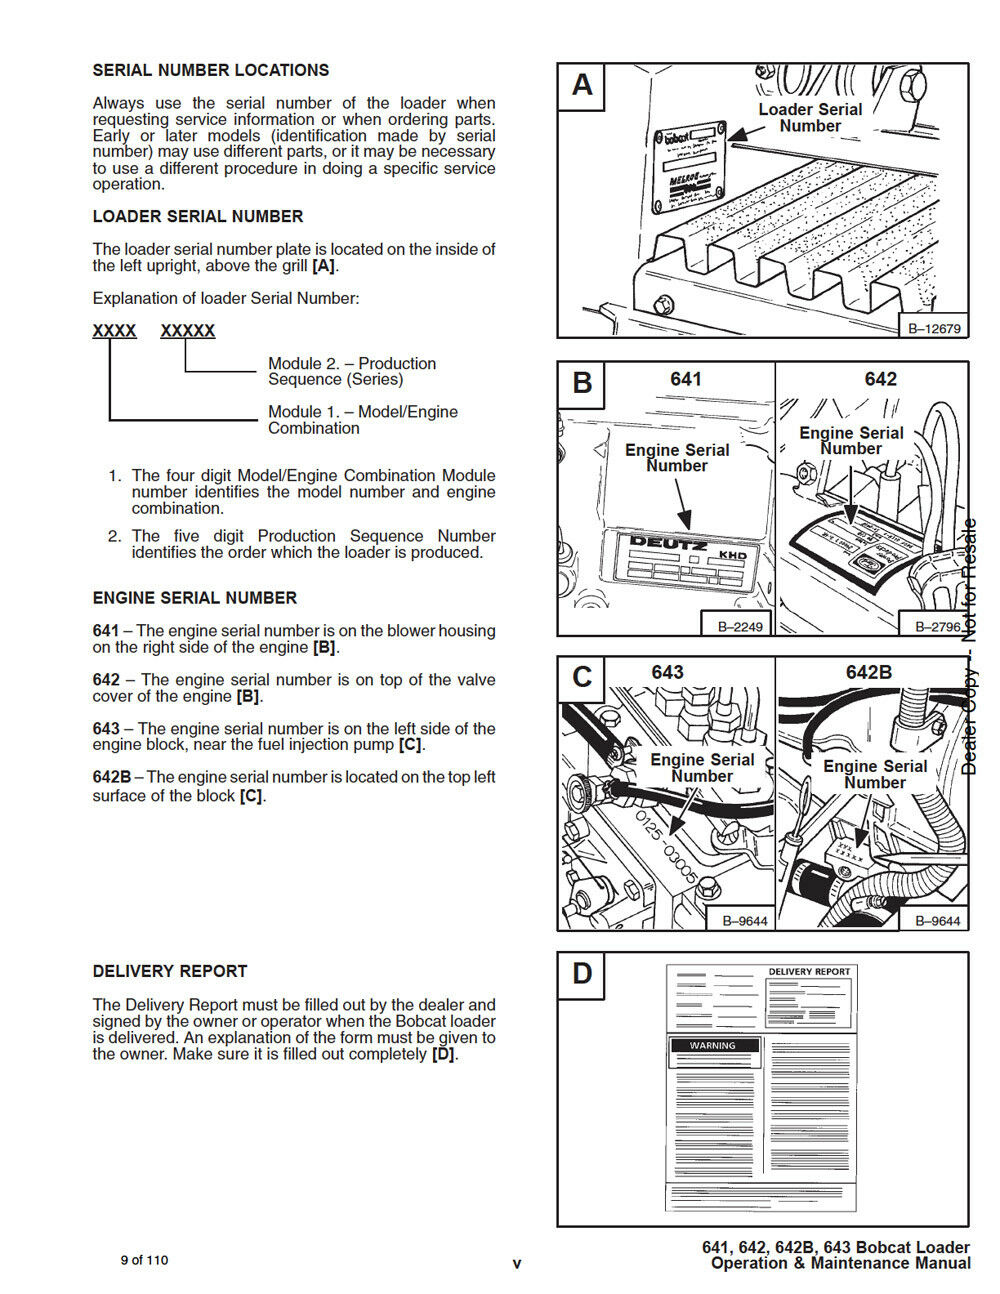 642 bobcat wiring diagram layout wiring diagrams u2022 rh laurafinlay co uk Bobcat  Skid Steer Wiring